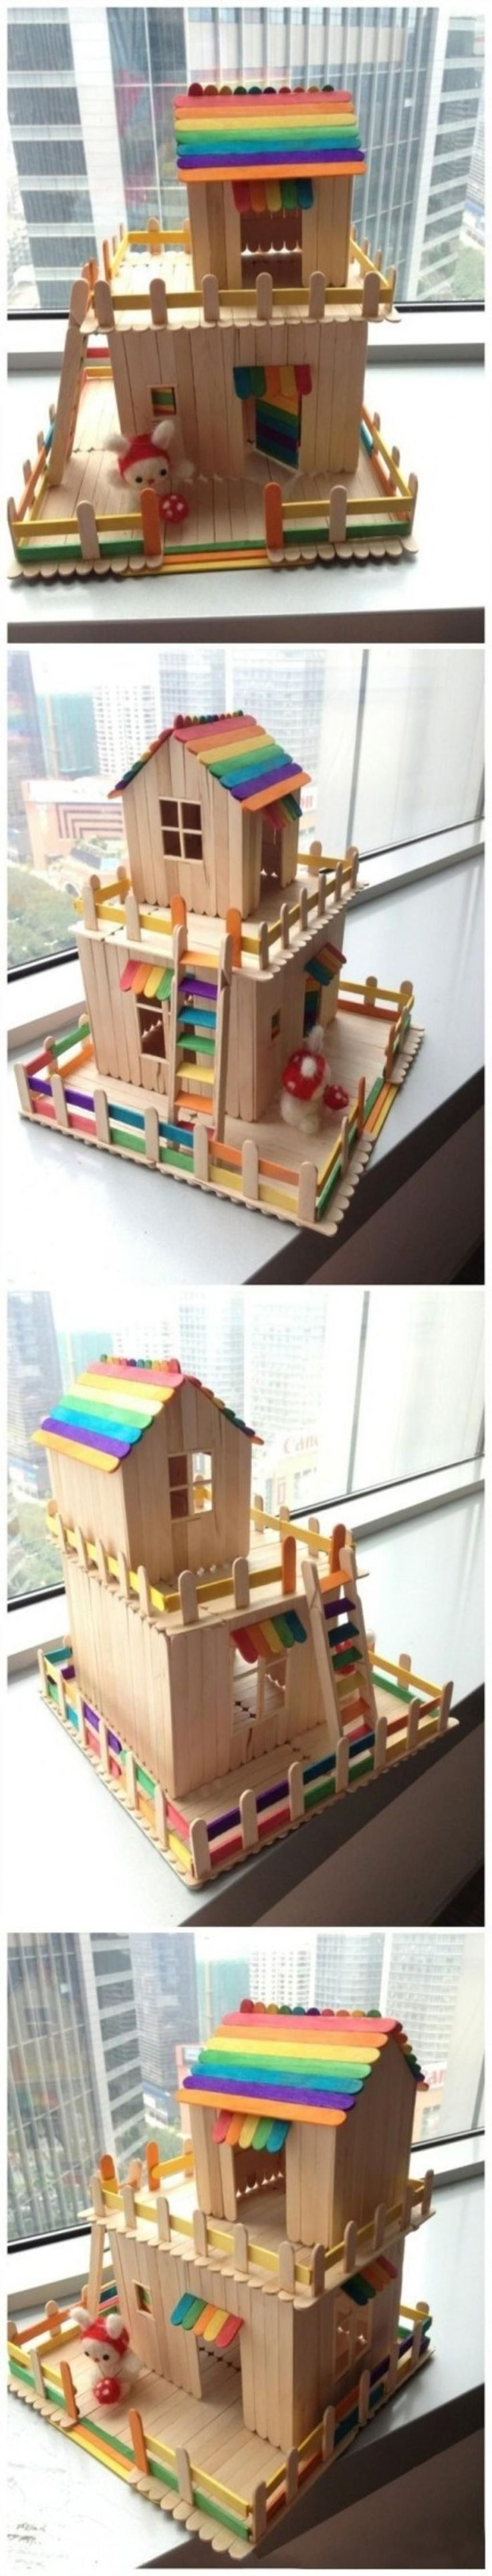 1000 id es propos de cr ations b ton popsicle sur How to make a small house work